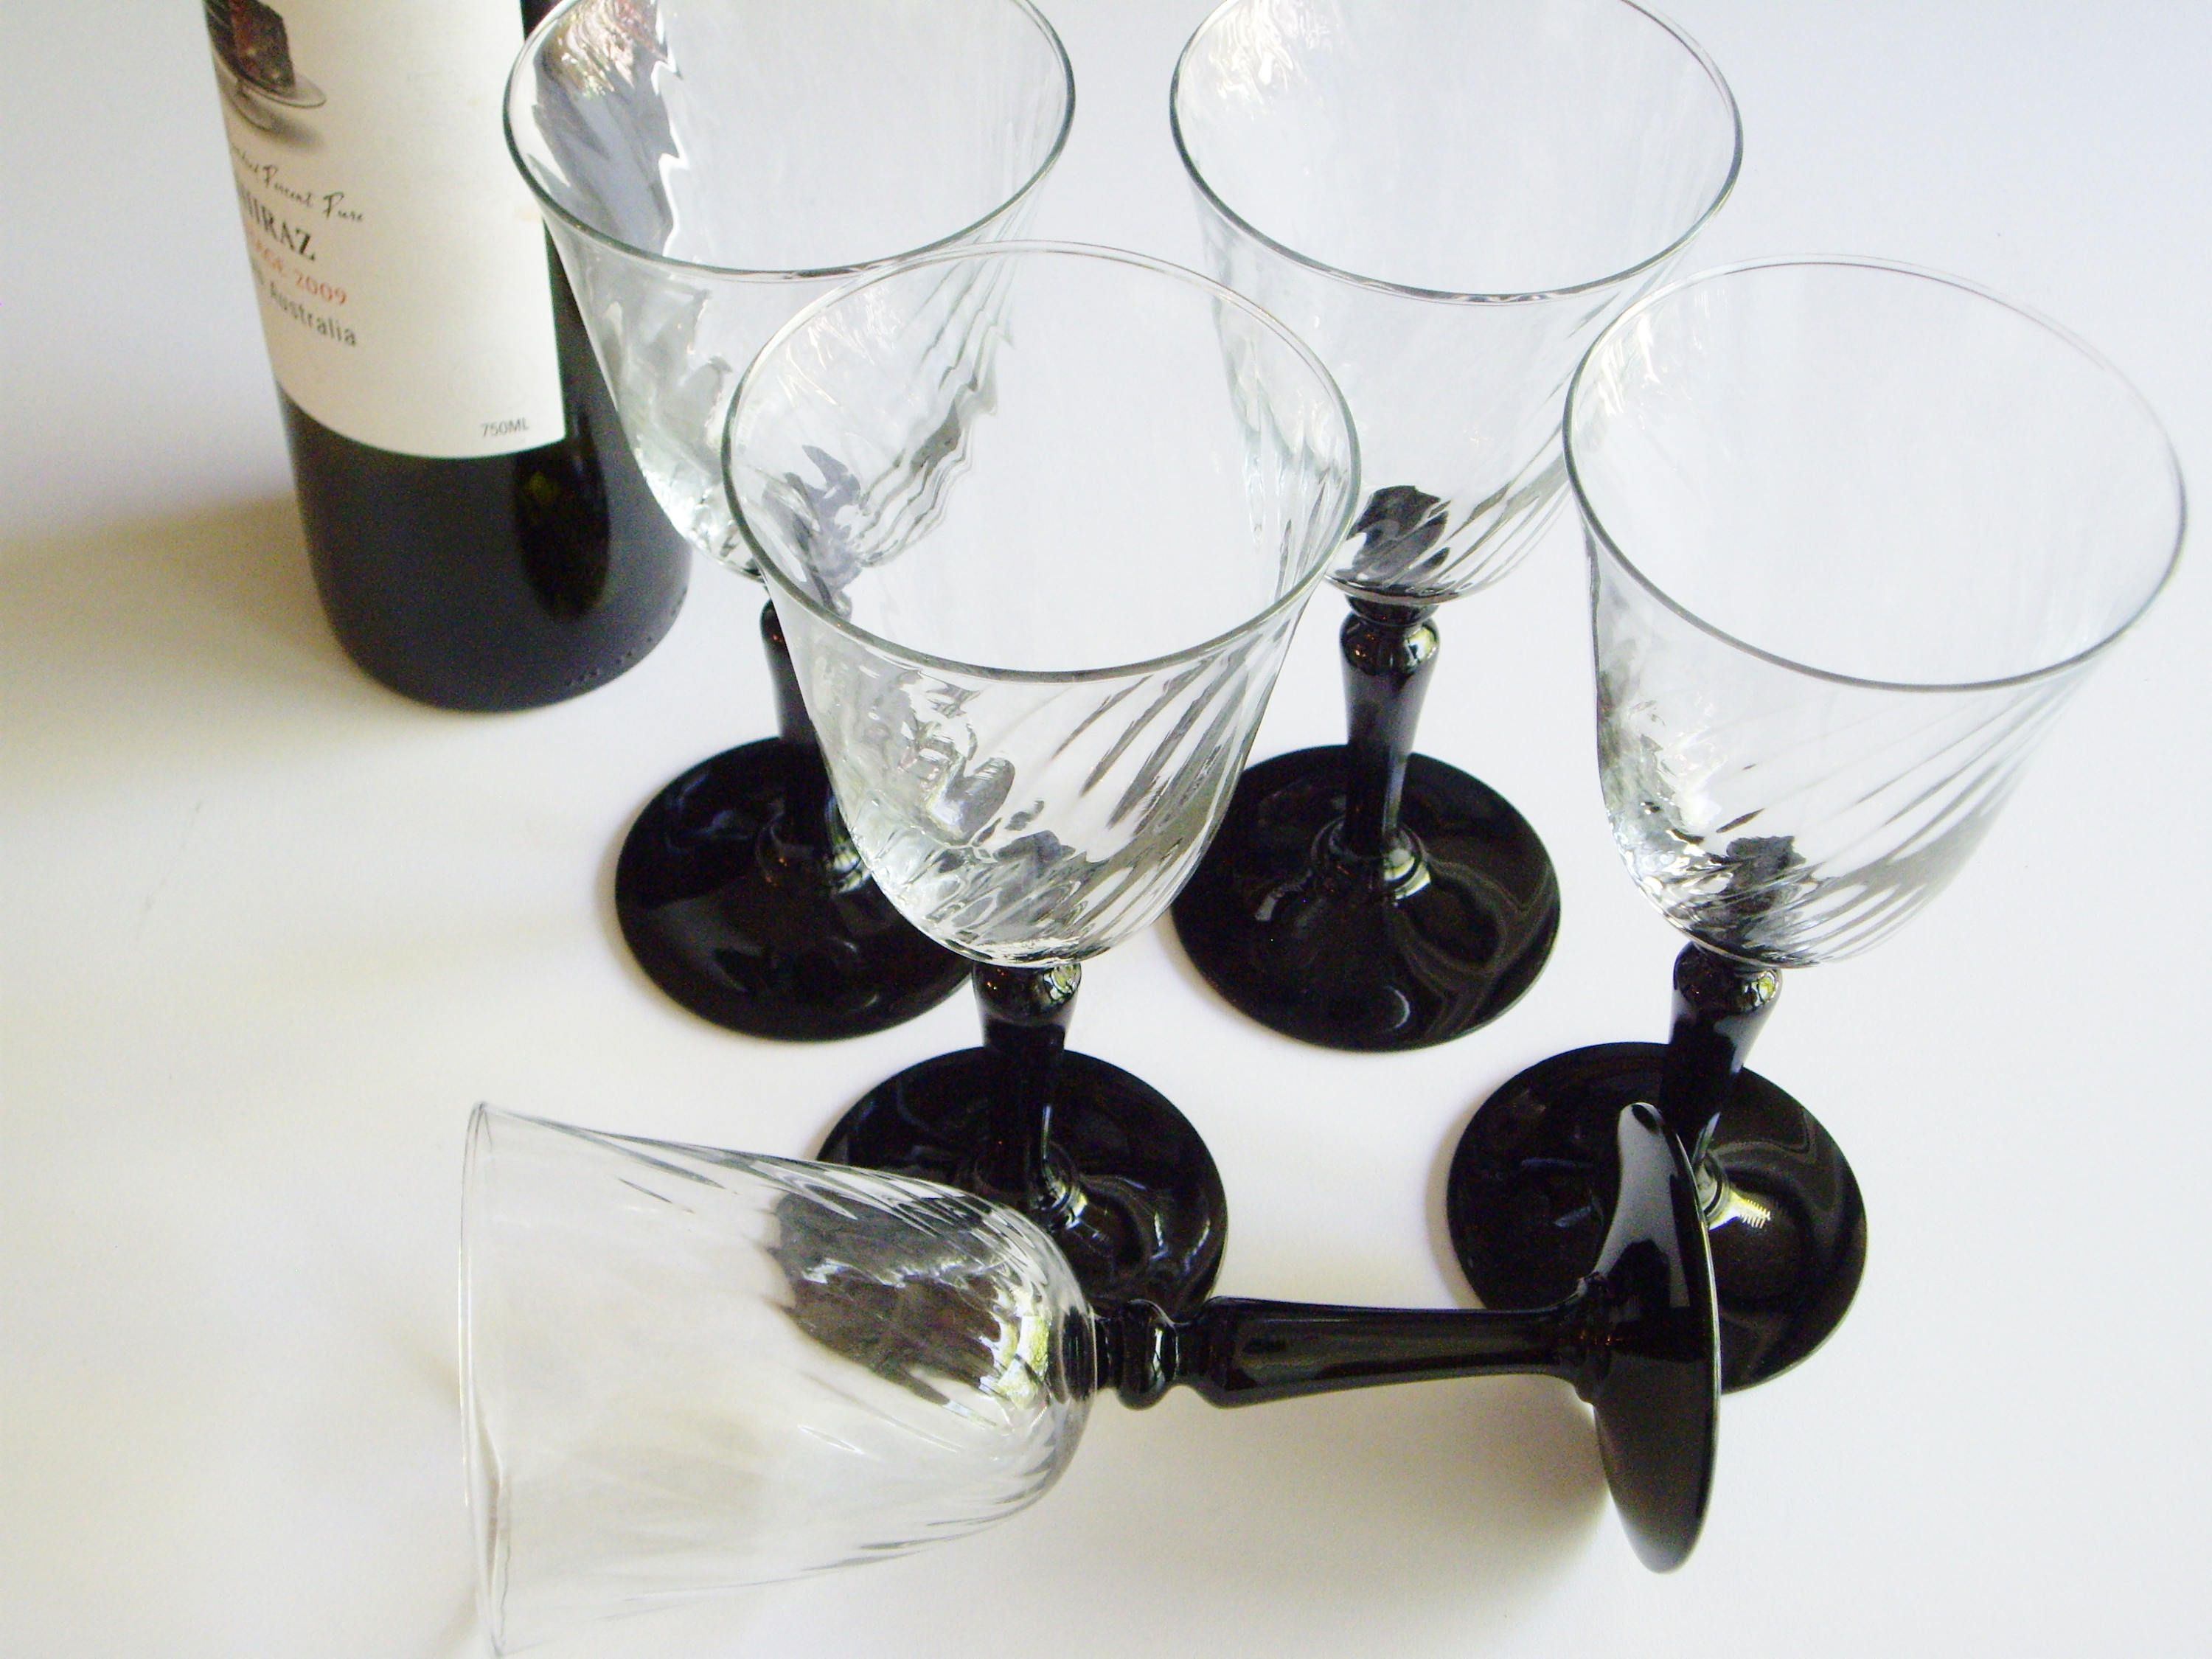 Wine Glasses With Black Stems Vintage Wine Glasses Luminarc France Verrier D 39arques